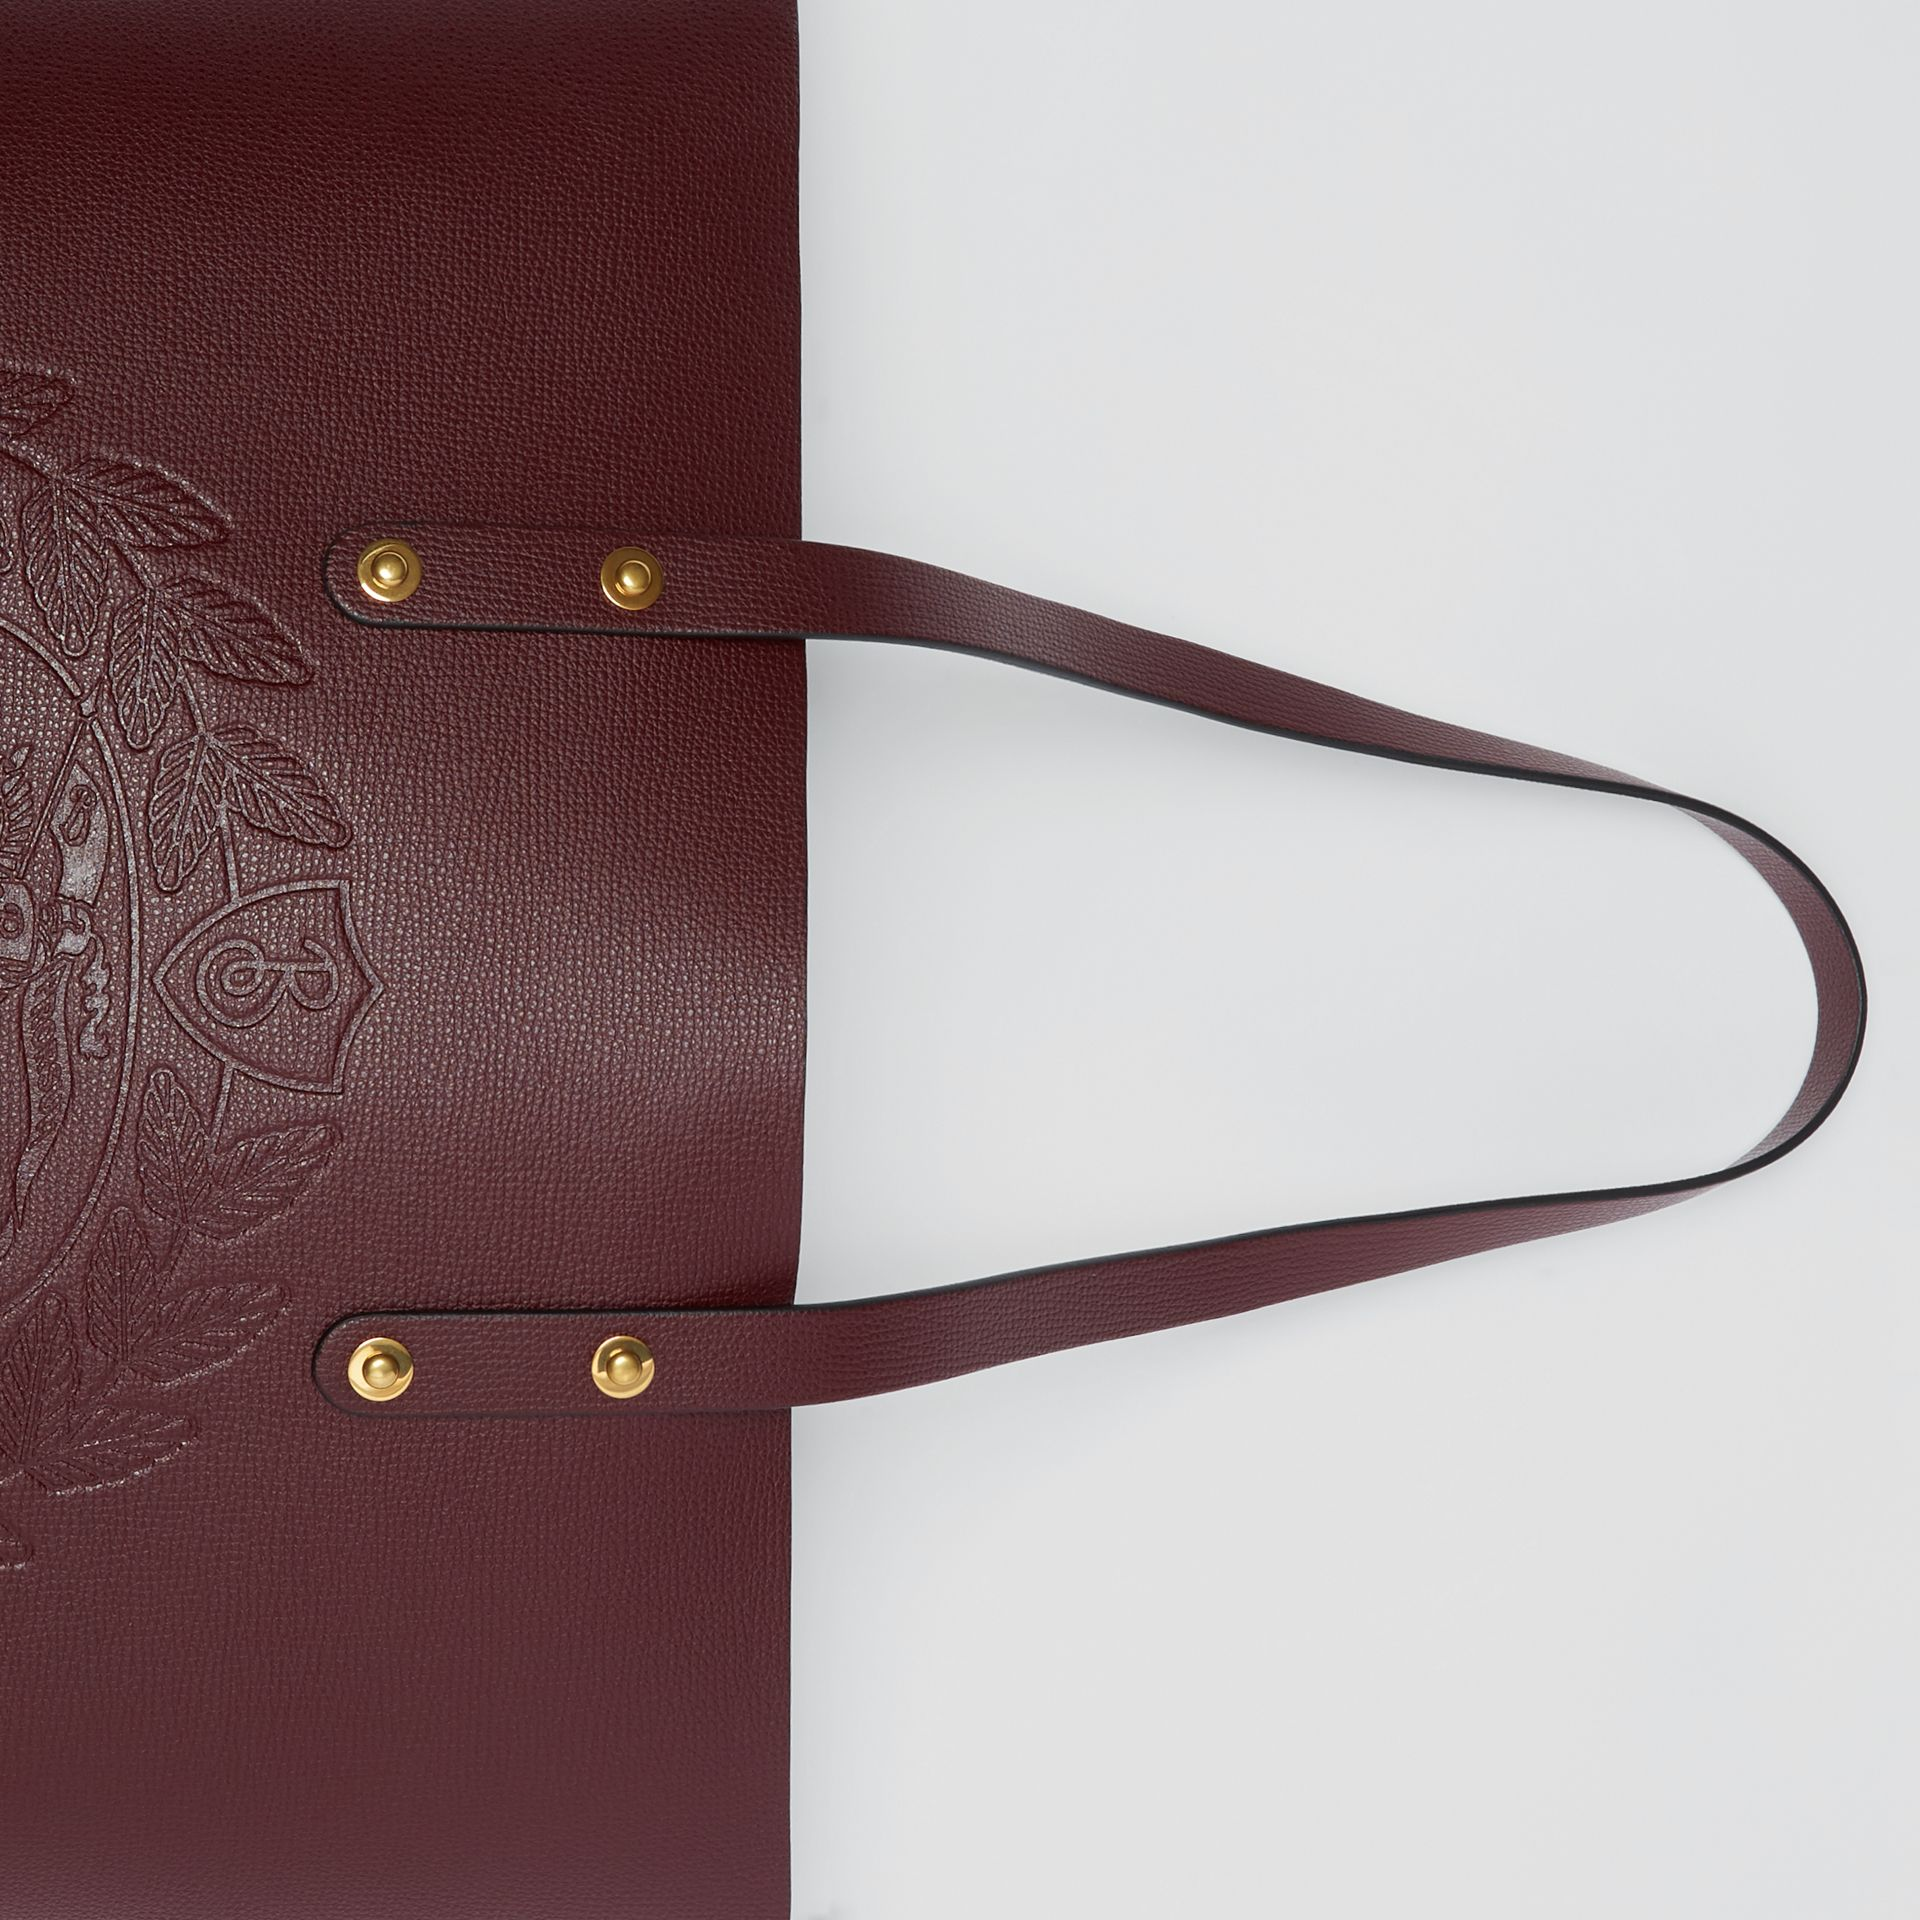 Small Embossed Crest Leather Tote in Burgundy - Women | Burberry - gallery image 1